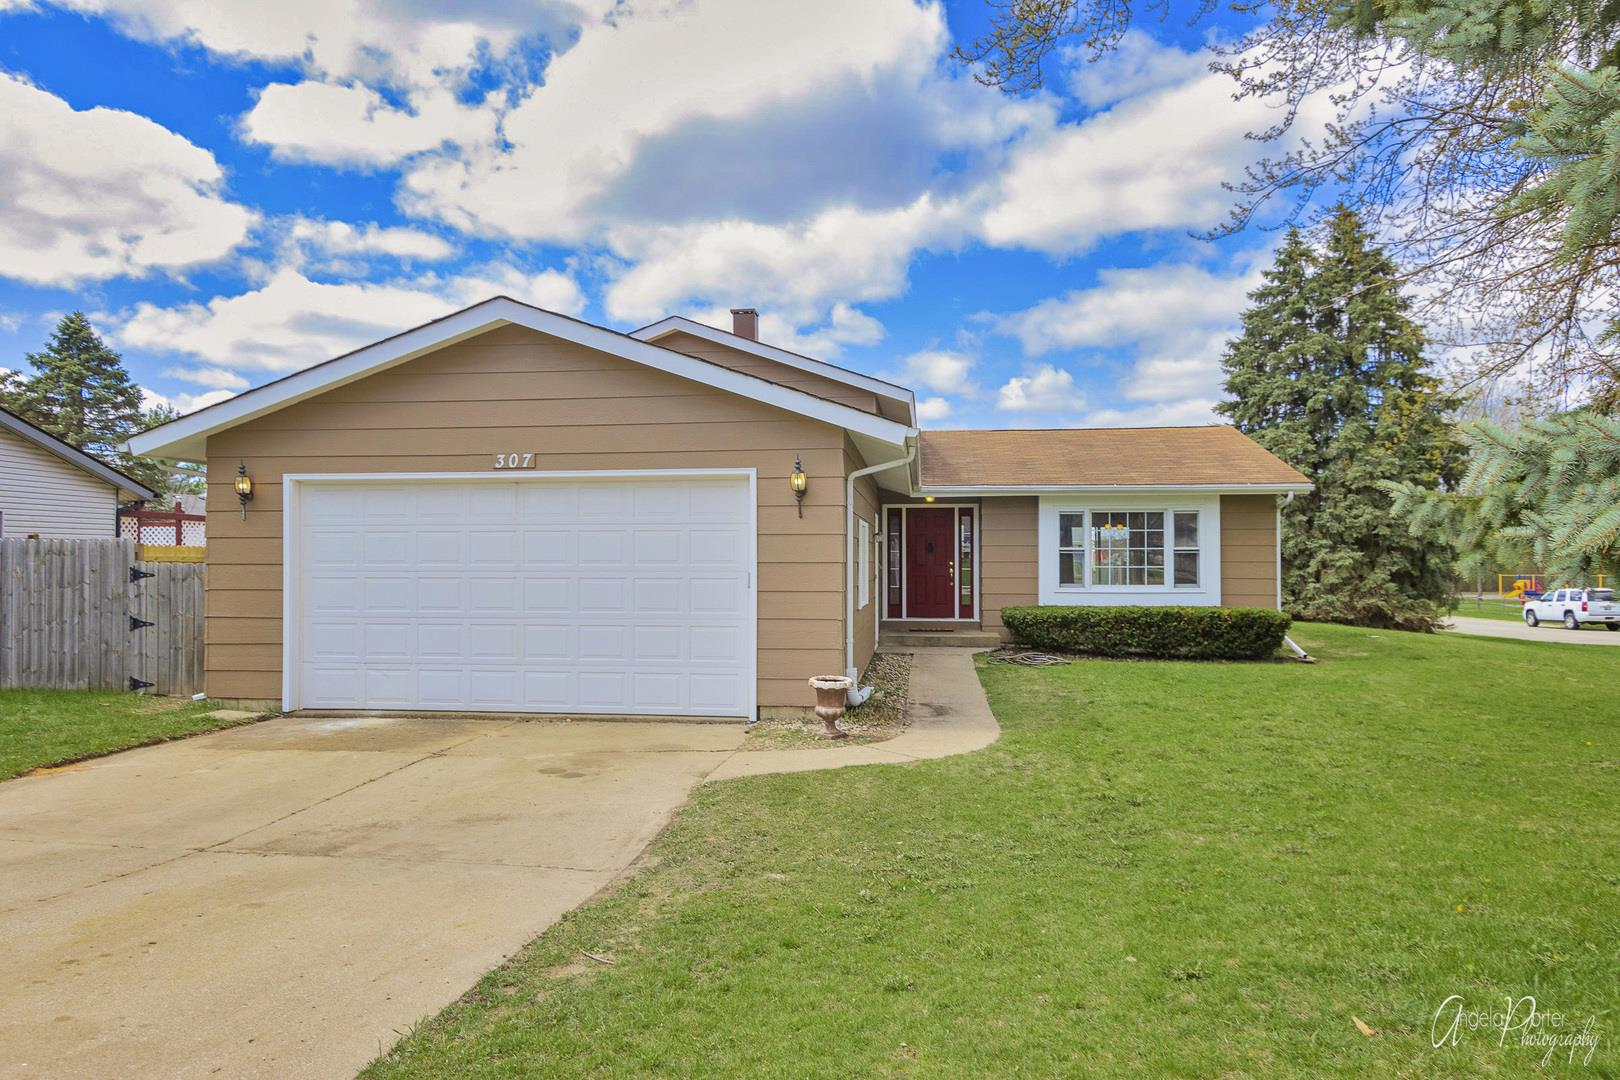 307 AUGUSTA Drive, McHenry, IL 60050 - #: 11057201